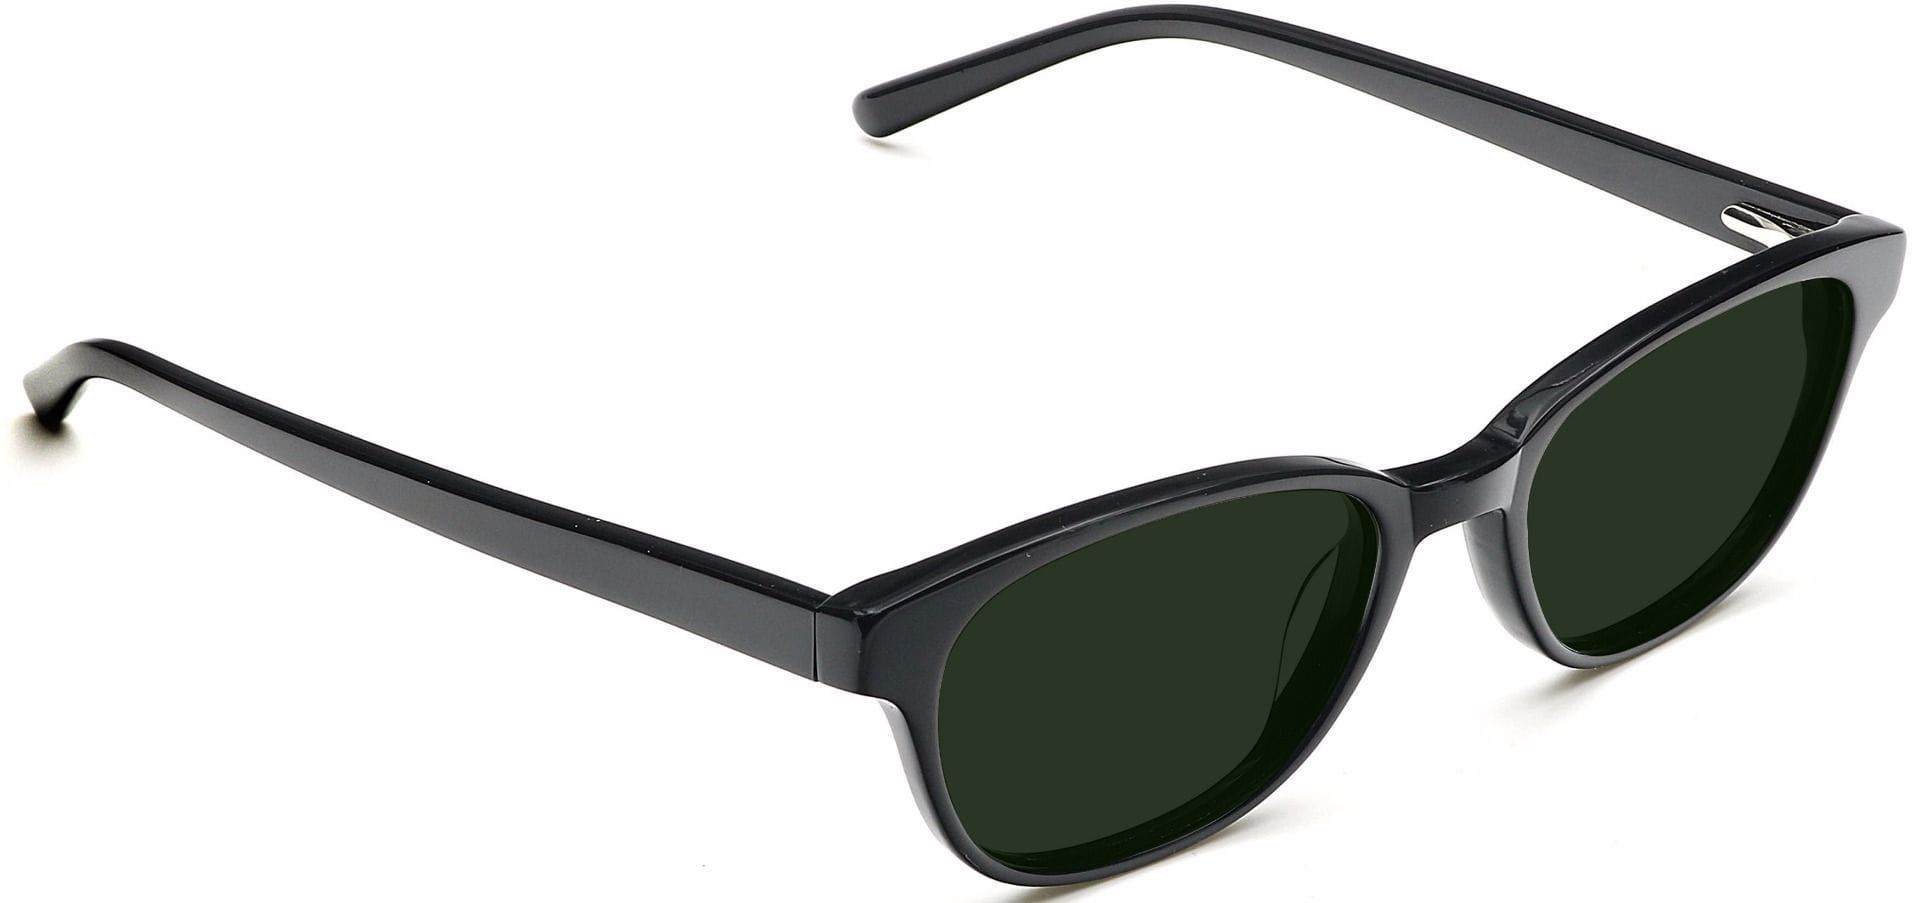 Elan Classic Square Reading Sunglasses - Black Frame With Green Lenses